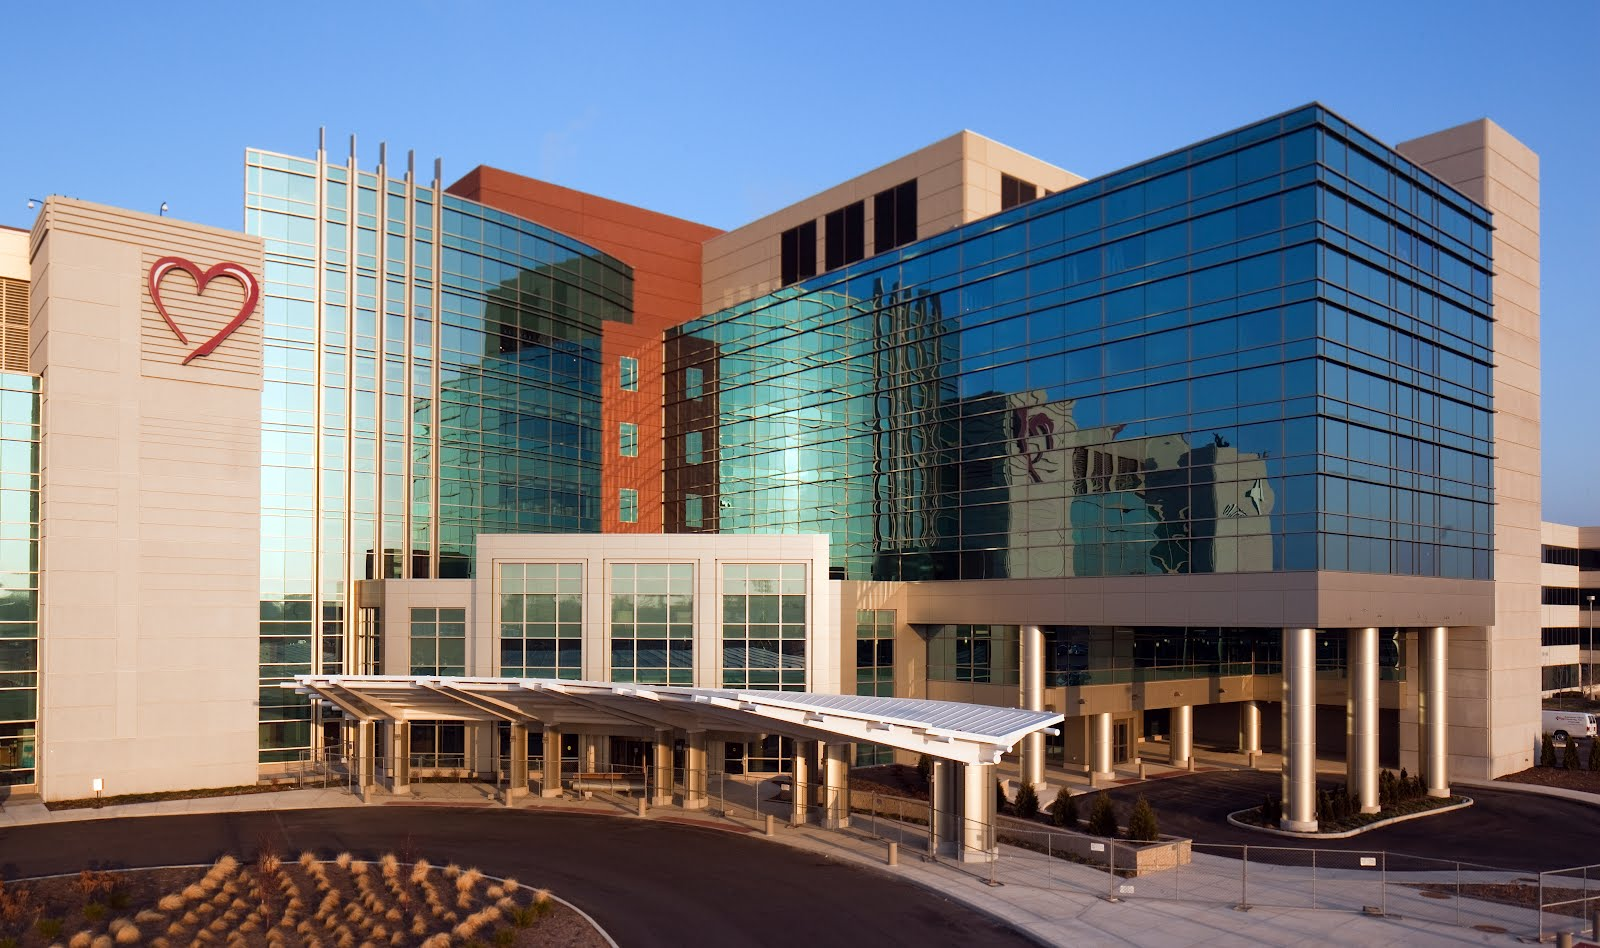 Indiana University Hospital >> Omega E-view Installed at Franciscan St. Francis in Indianapolis, IN - Omega Medical Imaging